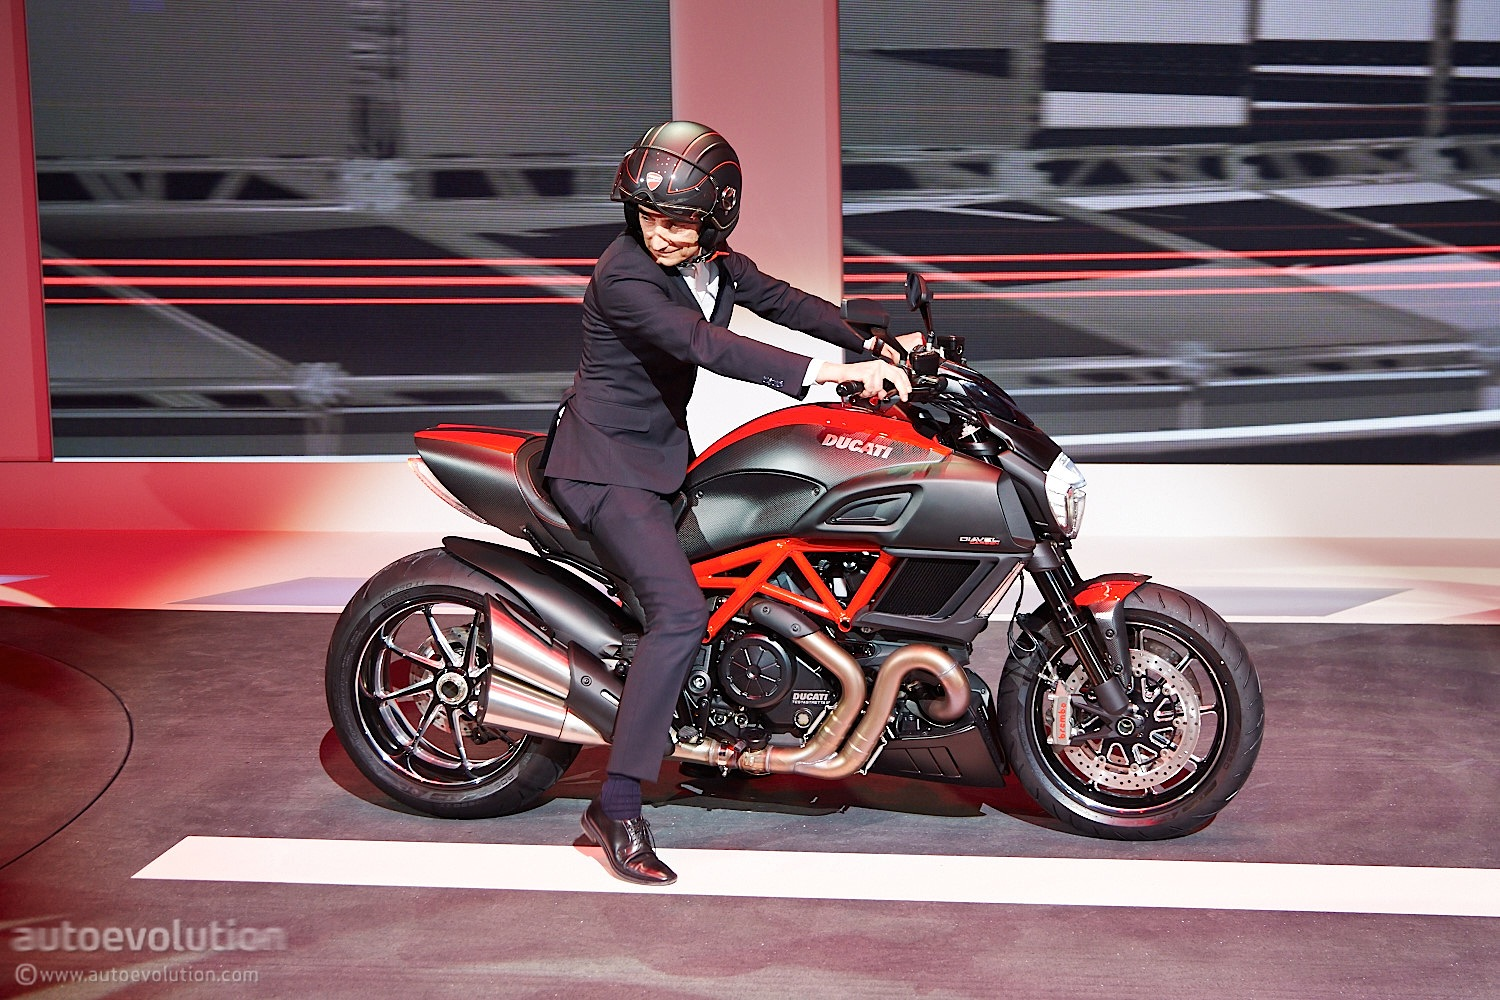 2015 Ducati Diavel Live Pictures And Tech Specs